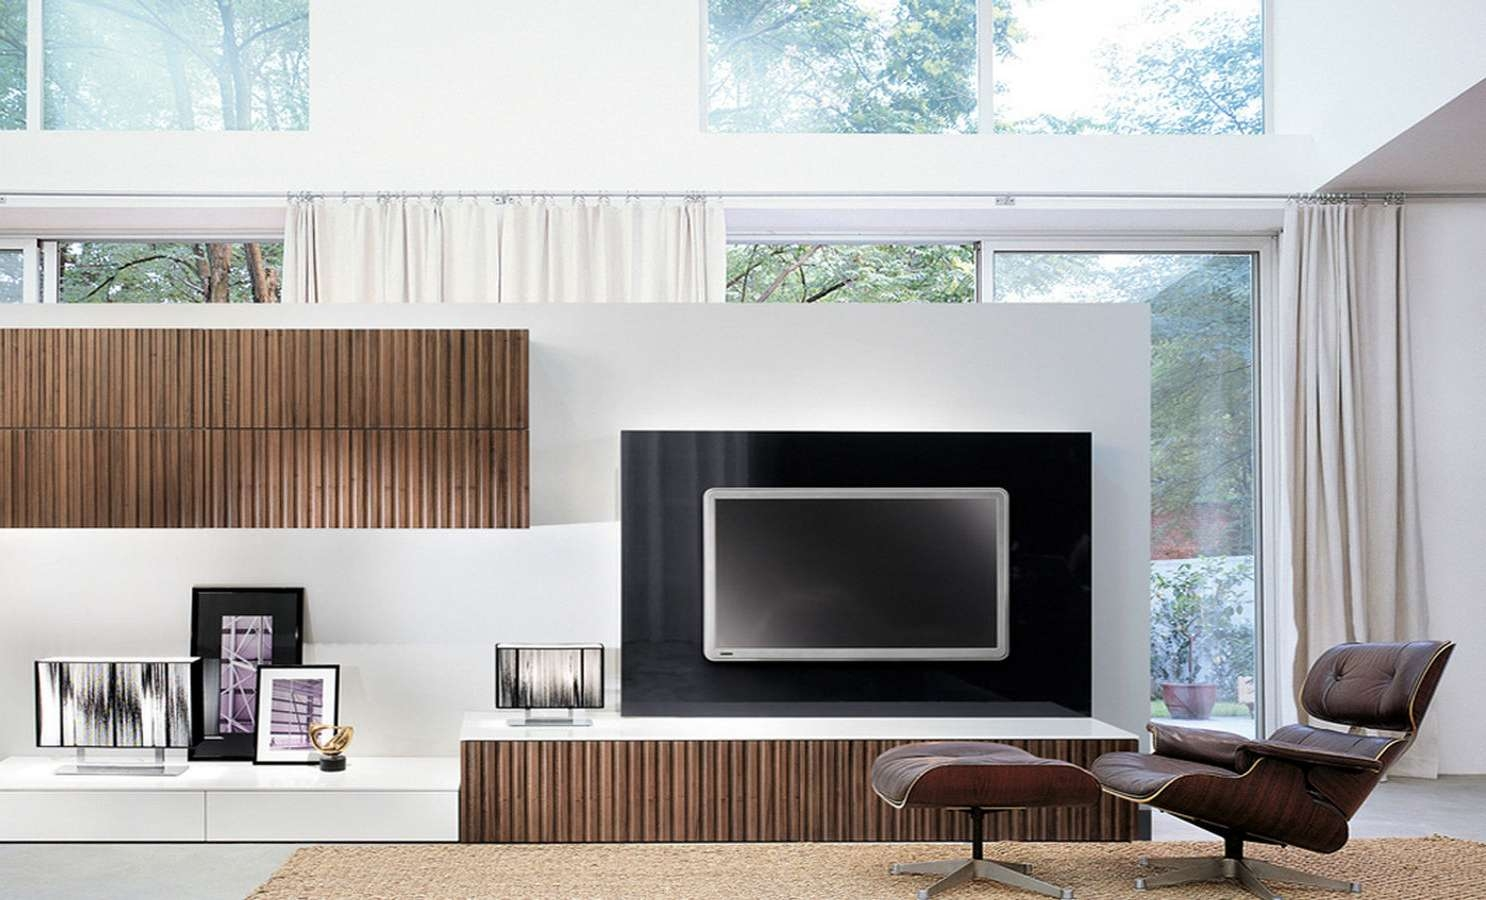 Excellent Tv Wall Unit Open System Tv Wall Unit Open System Jesse Intended For Full Wall Tv Cabinets (View 8 of 20)